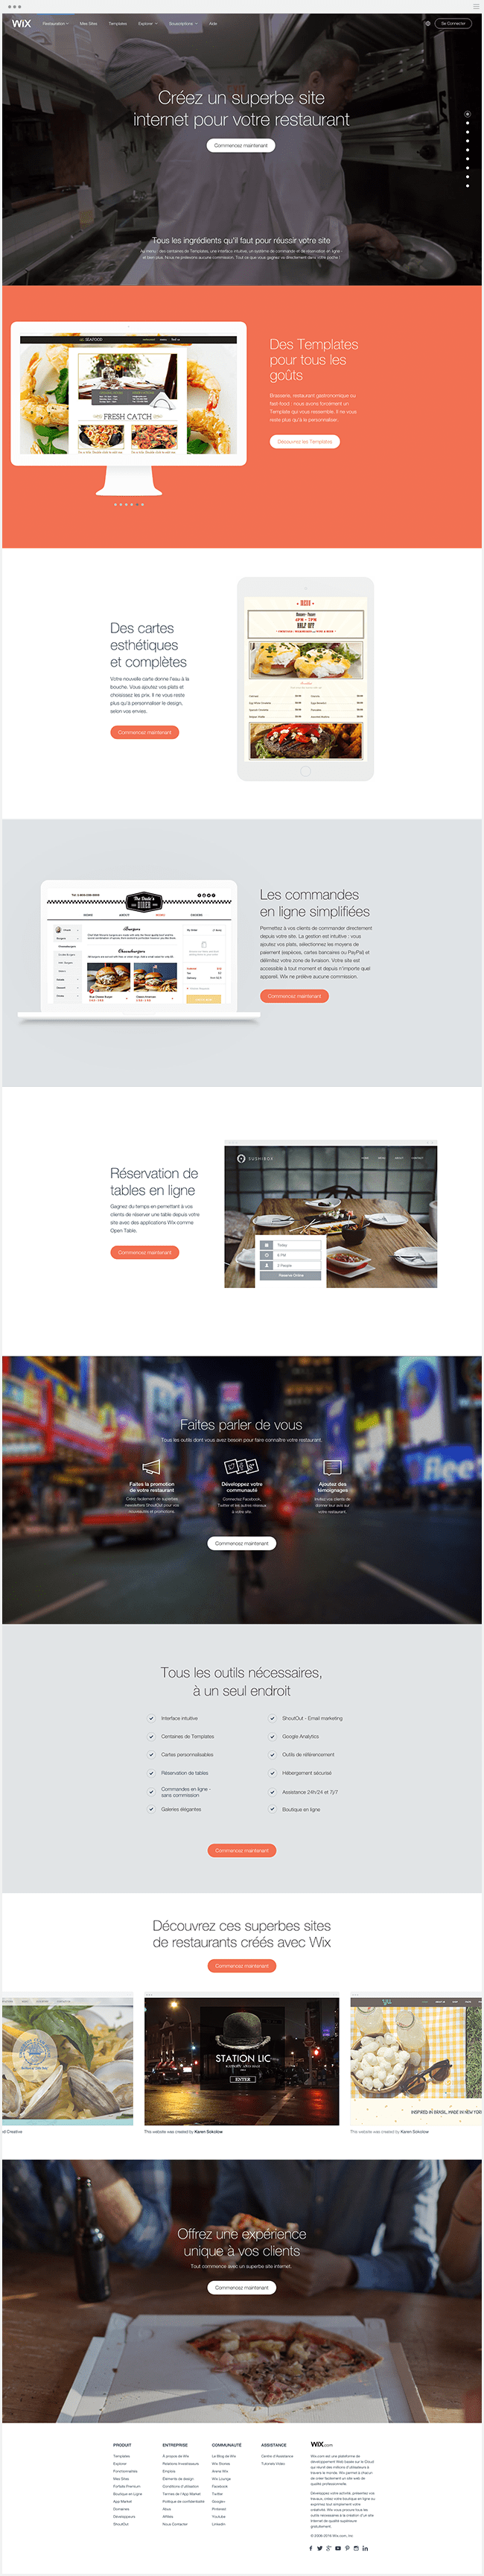 Site vitrine Wix Restaurants